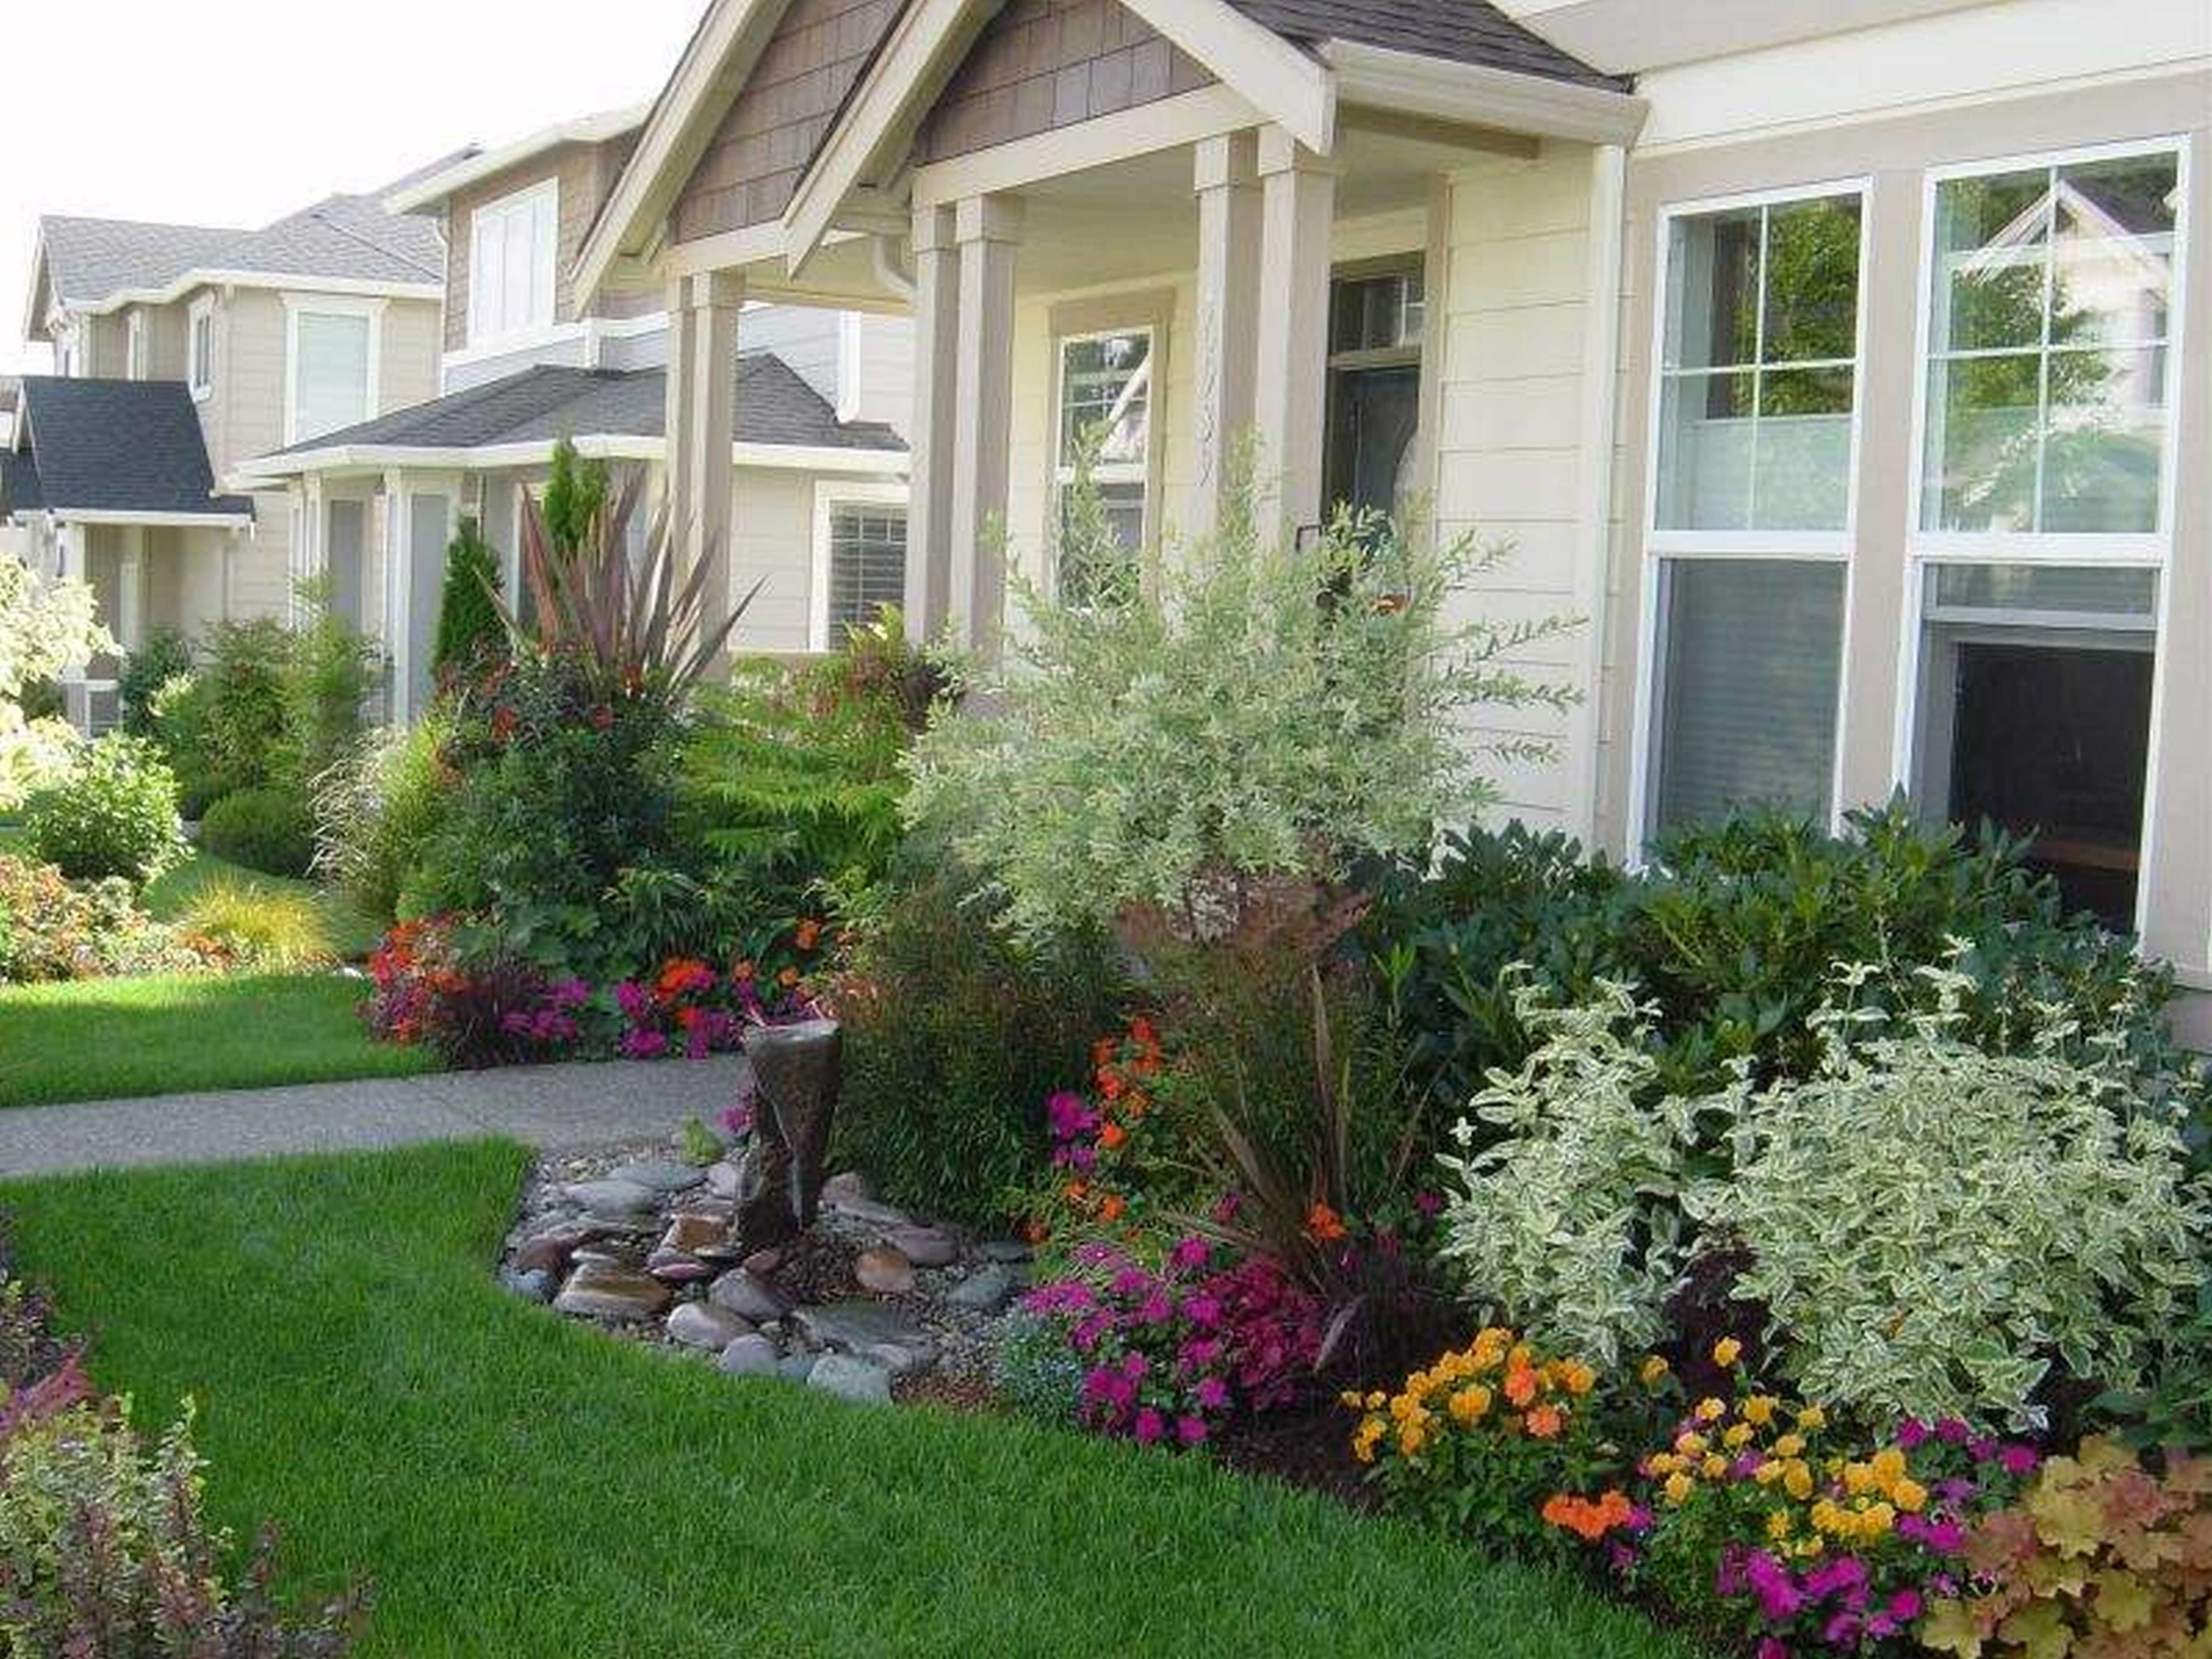 10 Stunning Landscaping Ideas Front Of House front house landscaping ideas images and charming shrubs photos 2020